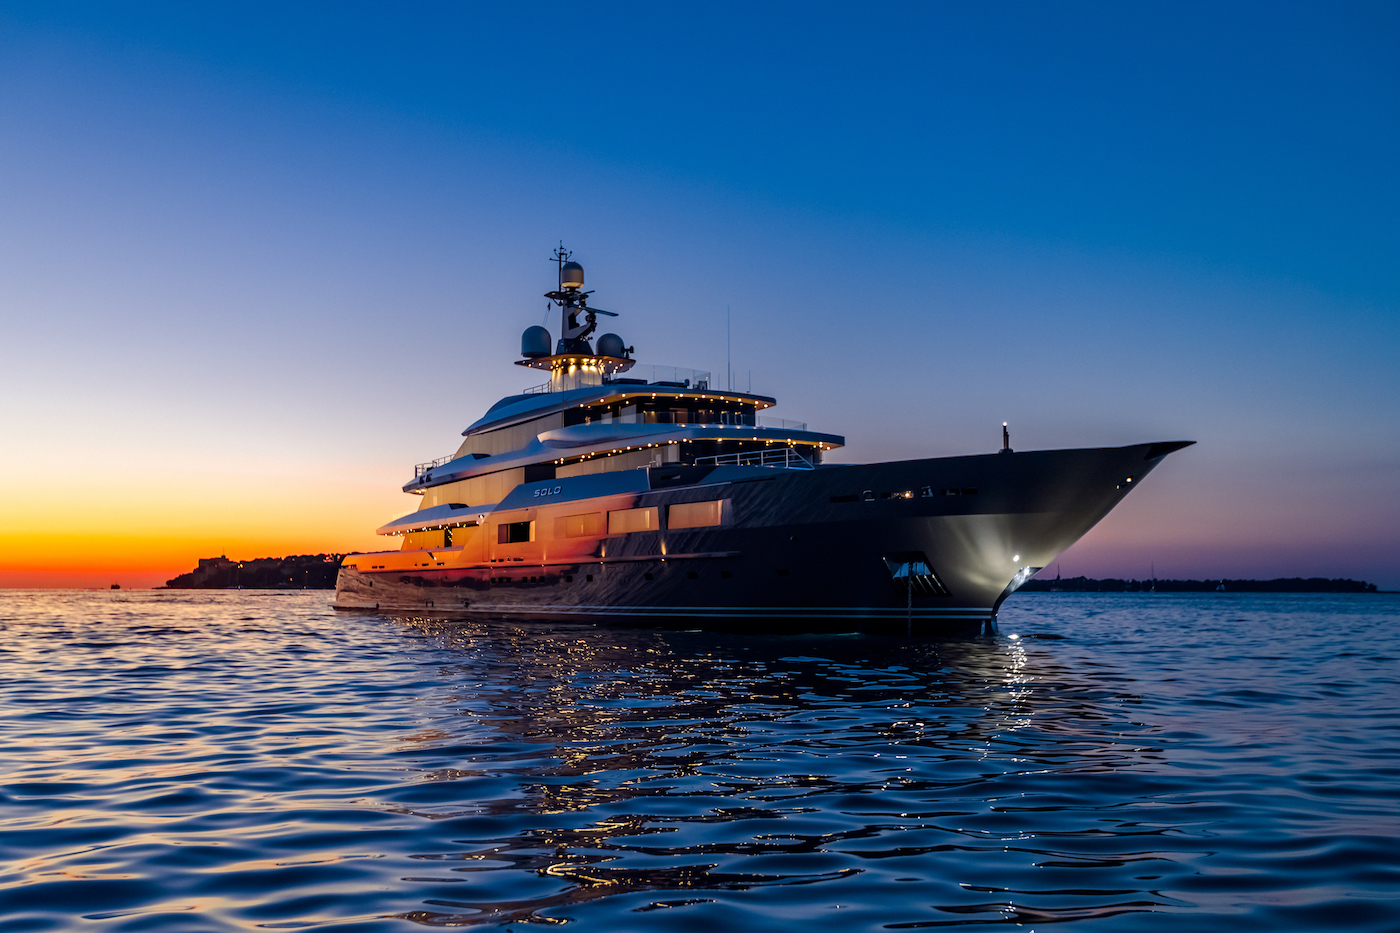 SOLO Superyacht By Night After Sunset